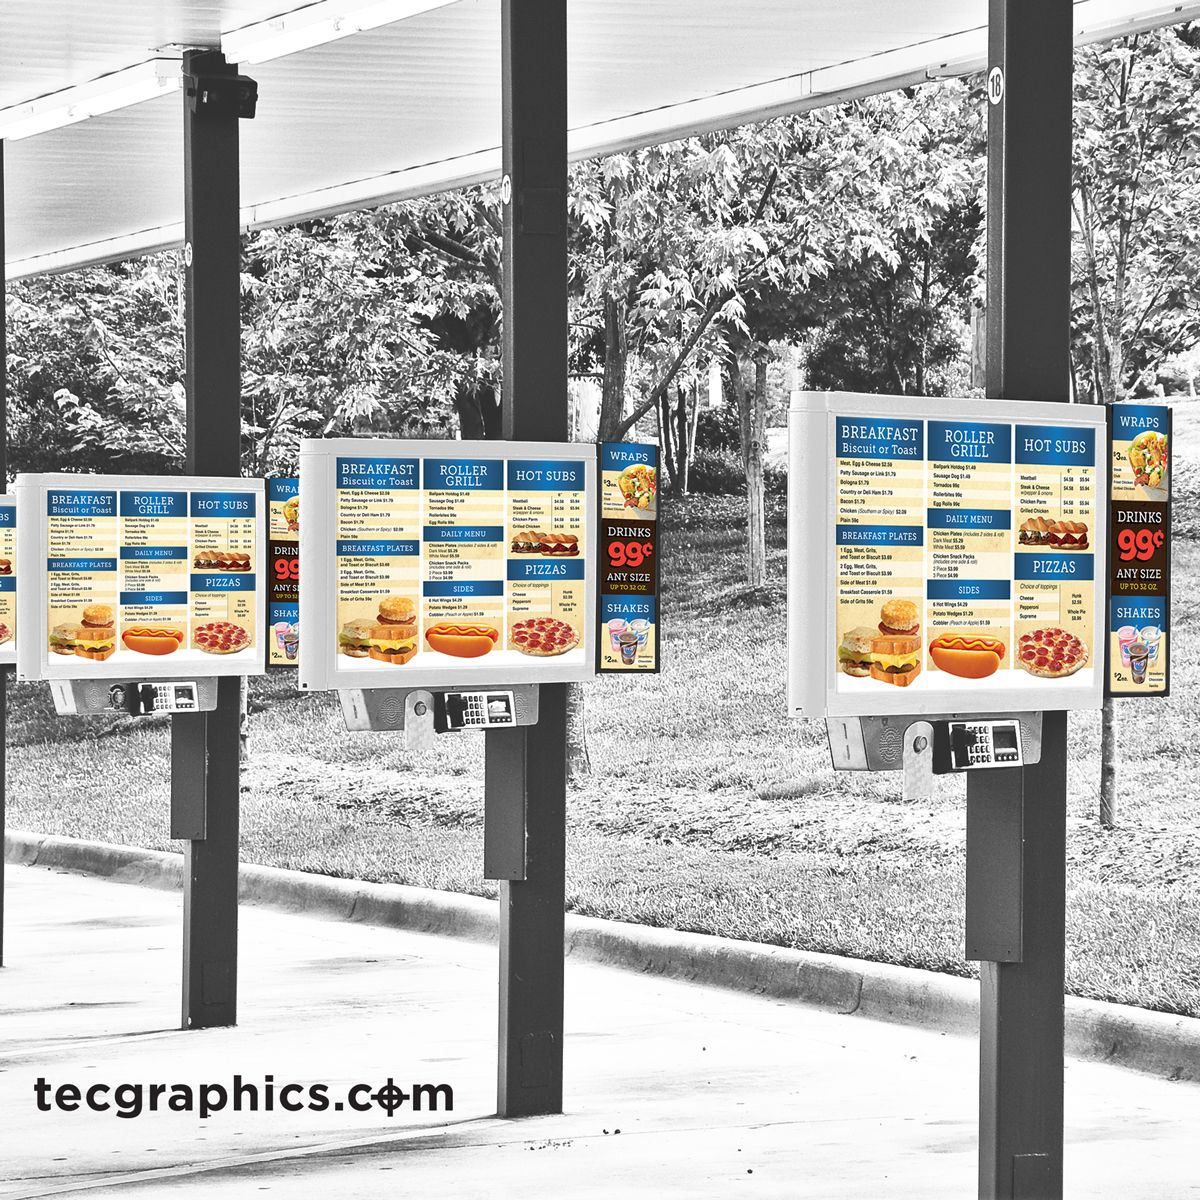 Pin on TEC Graphics featured items